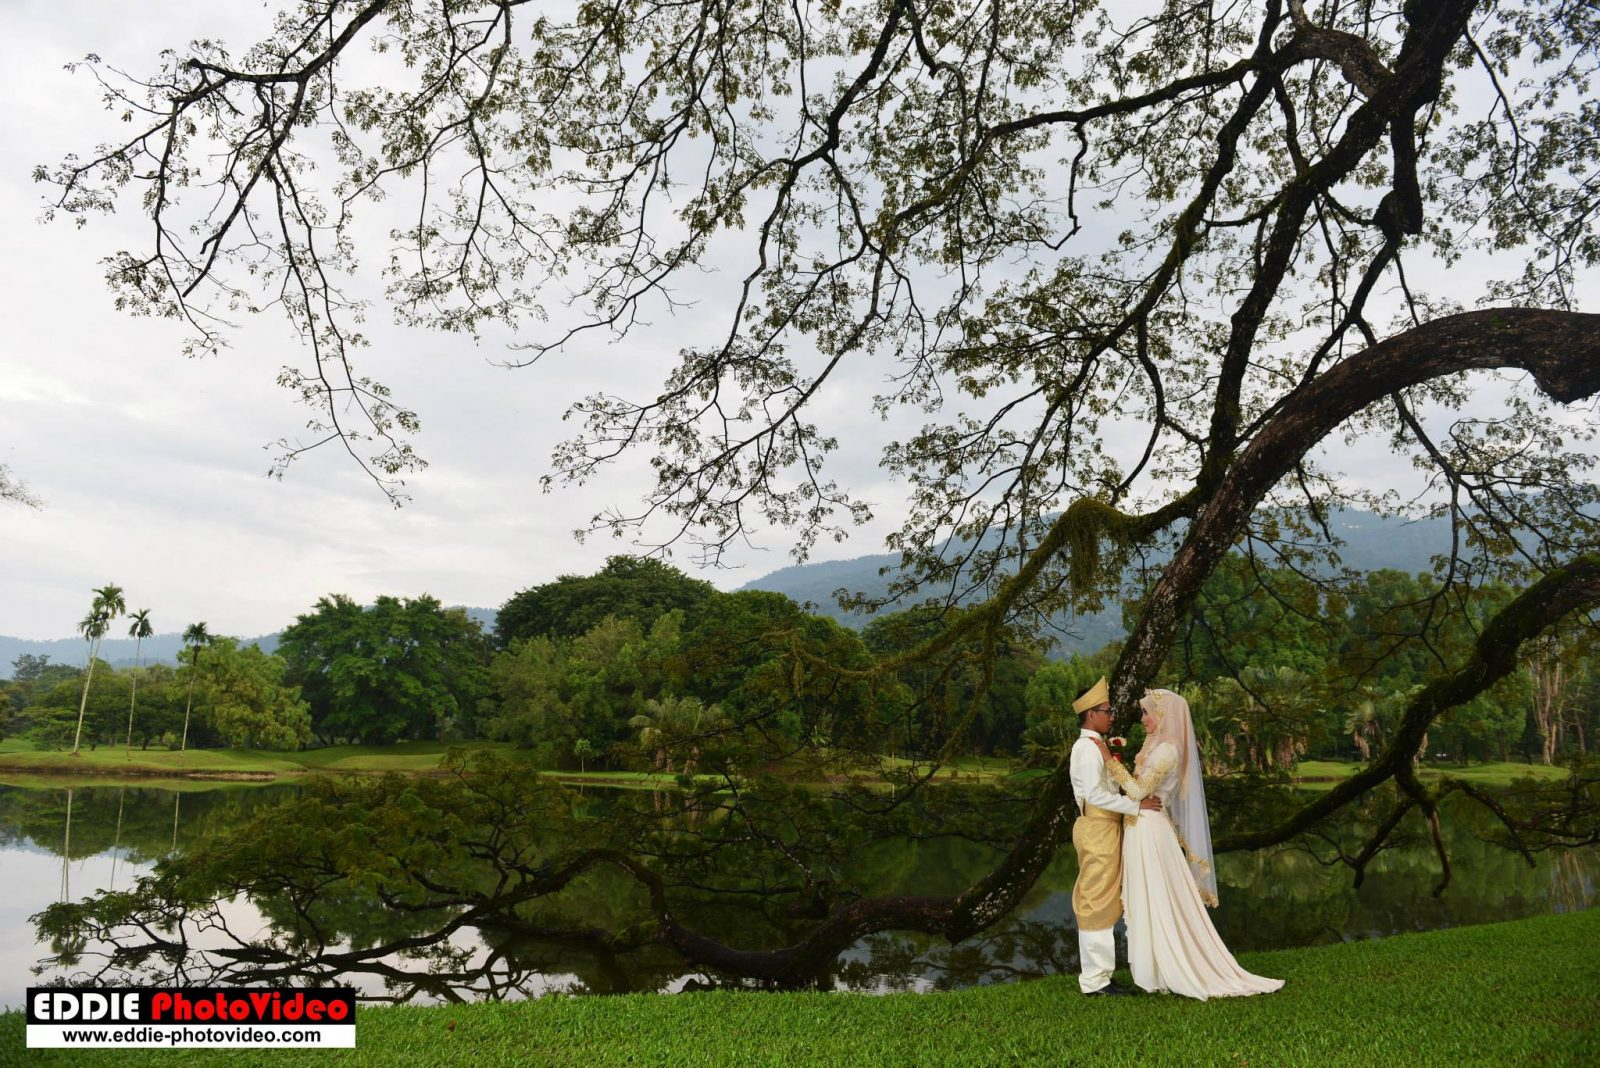 Taman Tasik Taiping by Eddie PhotoVideo. Source.